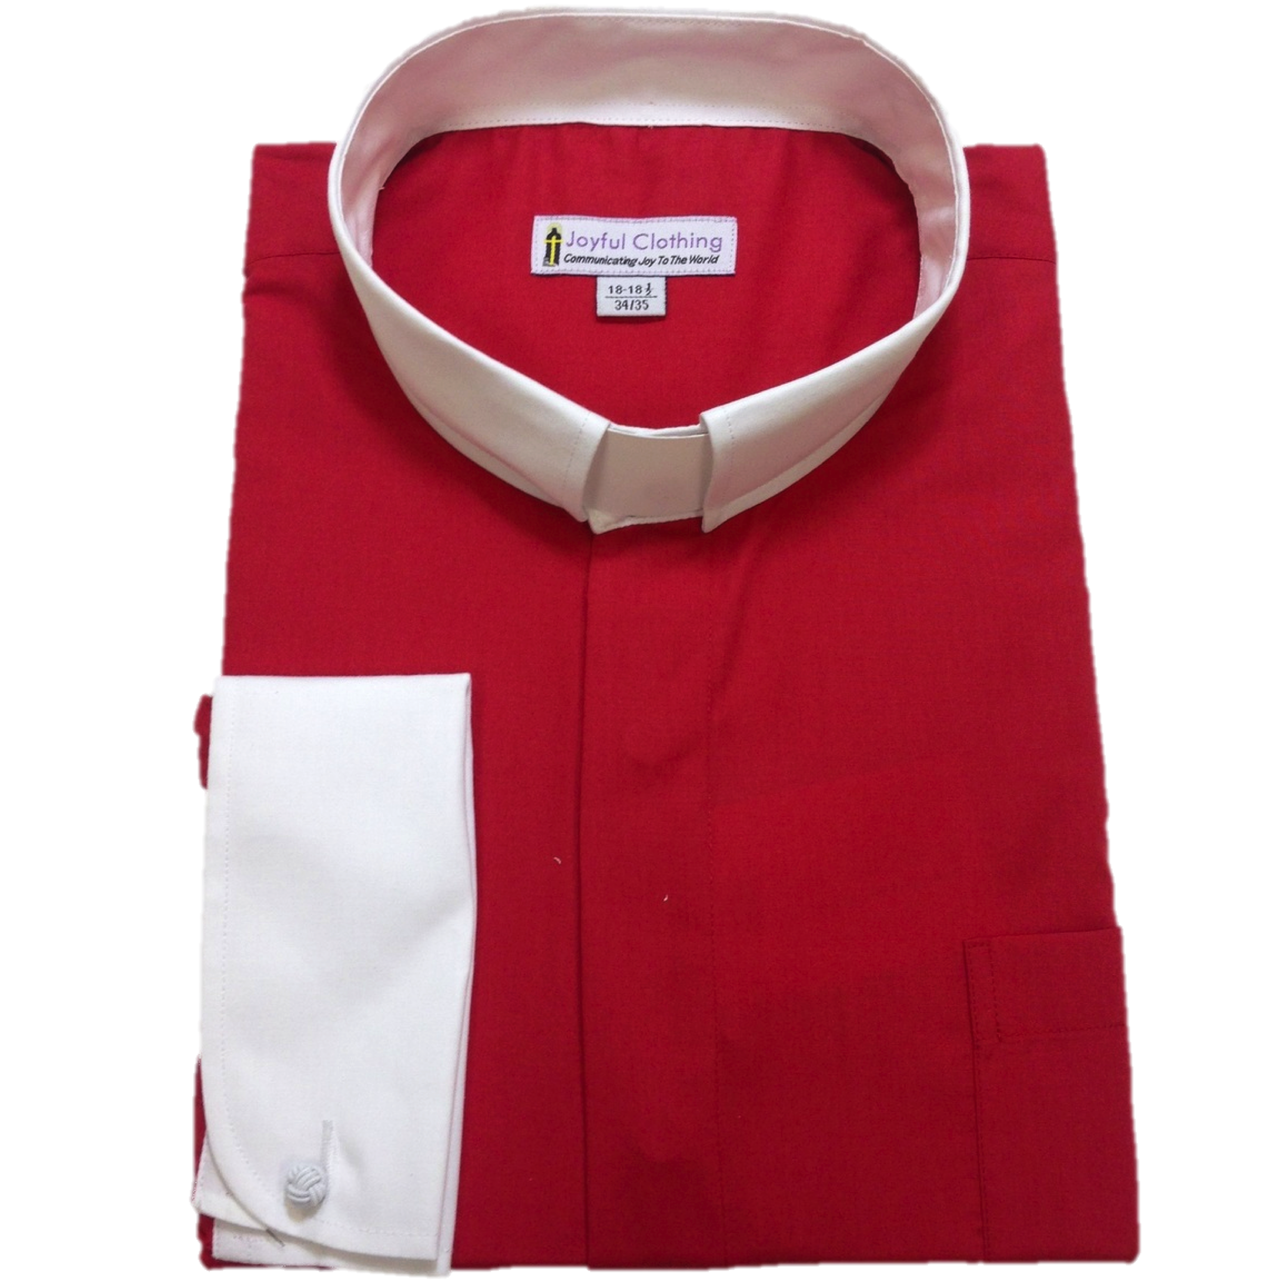 132. Men's Contrast Tab-Collar Clergy Shirt - Red/White Collar